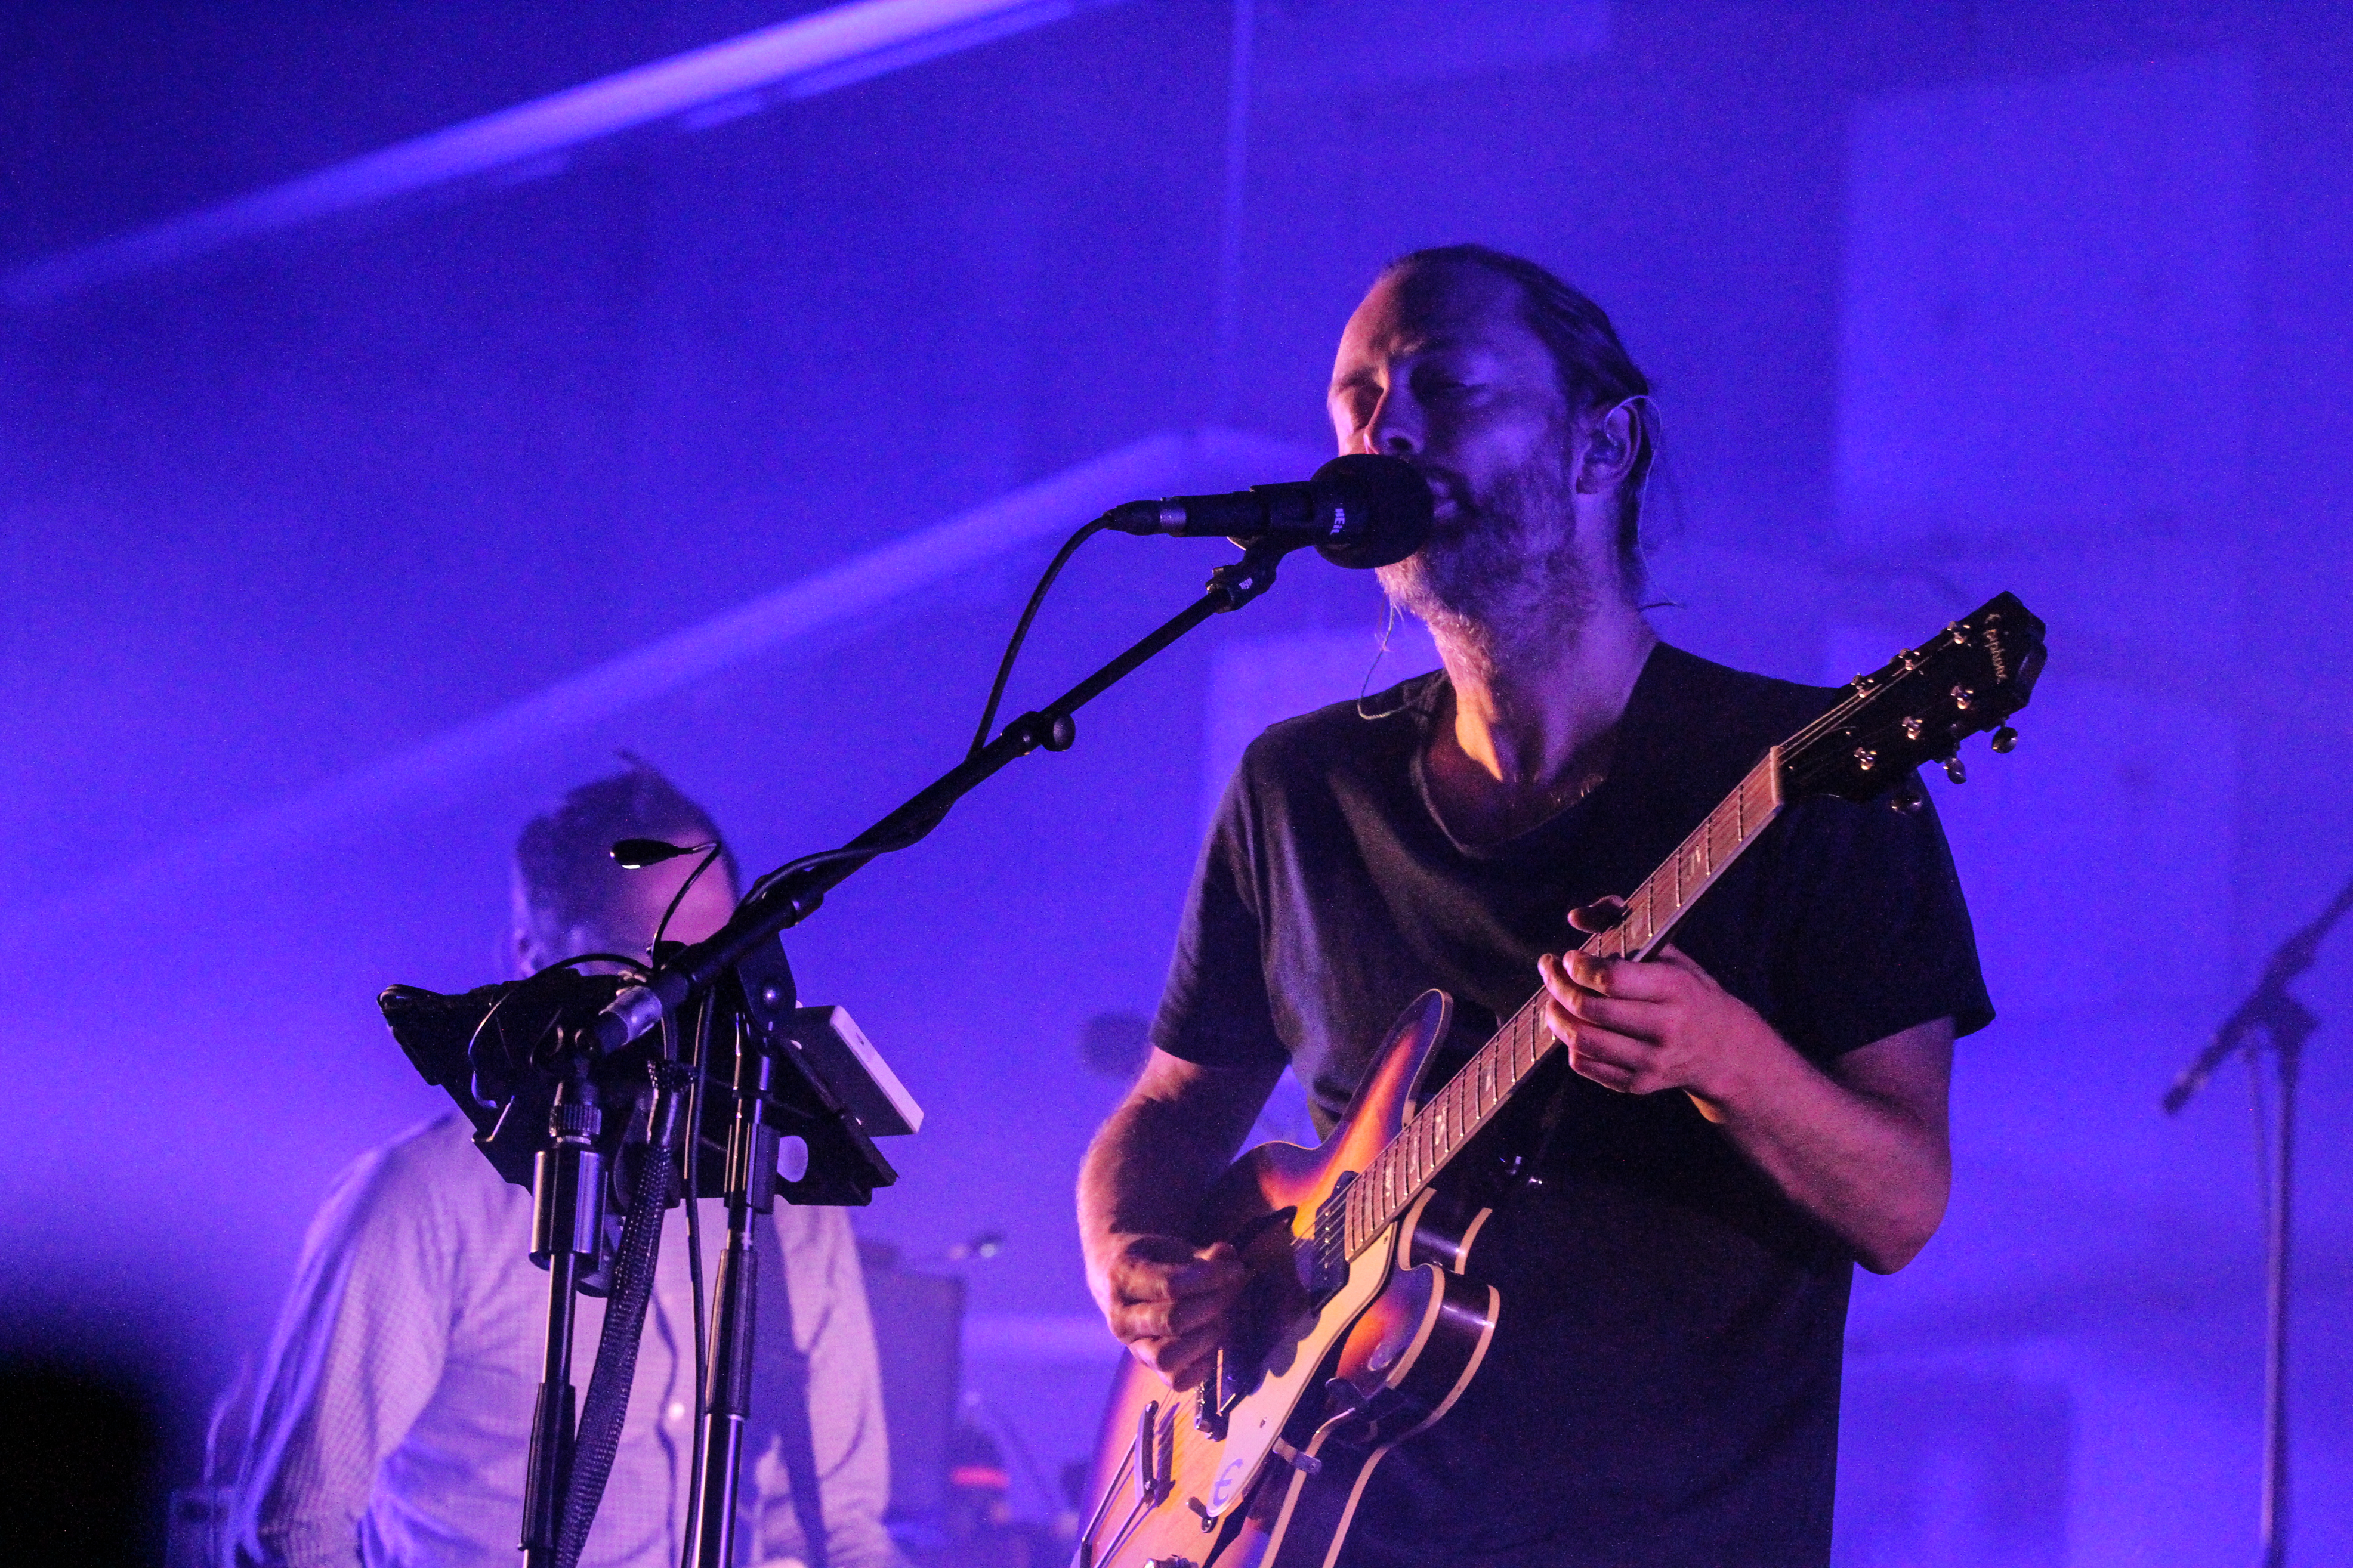 Radiohead singer Thom Yorke (front) and producer Nigel Godrich (rear) have accused Spotify of not supporting new artists fairly.